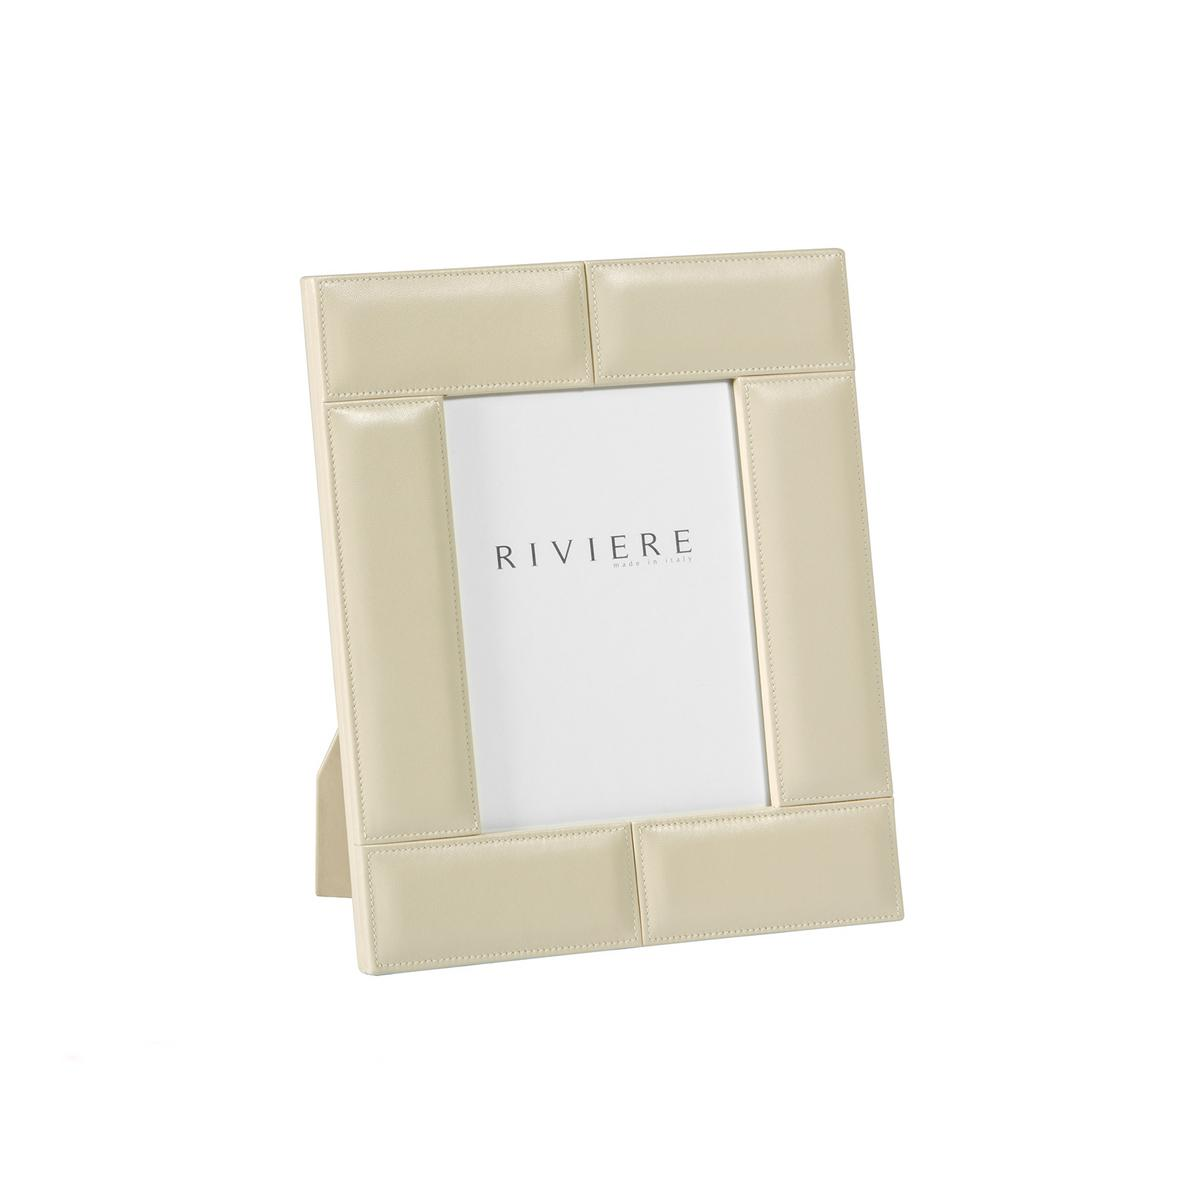 Riviere Stitches leather frame, ivory, photo size 13 x 18 cm (5\'\' x ...